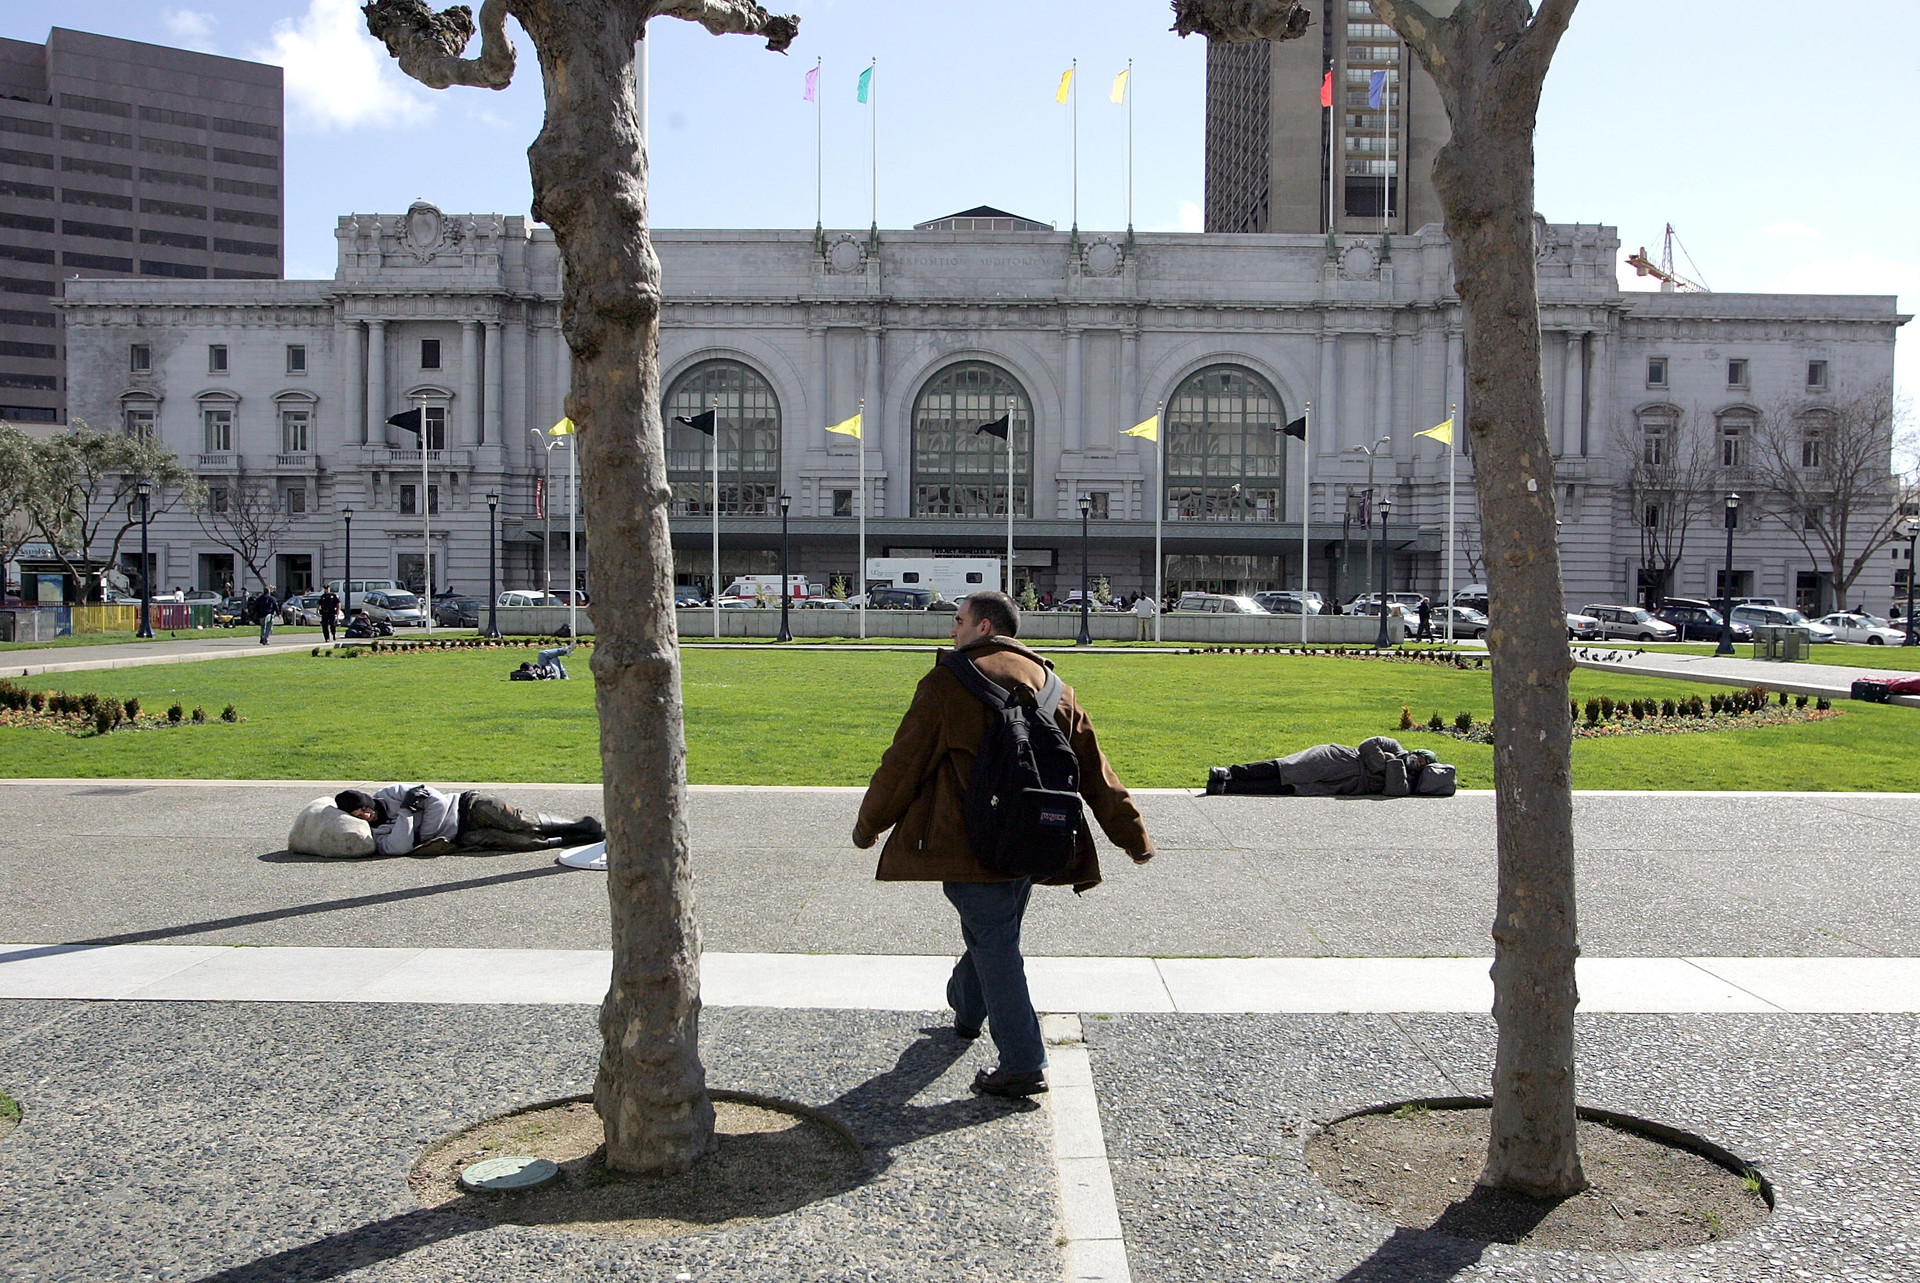 A man walks by two homeless people sleeping outside in the San Francisco Civic Center.